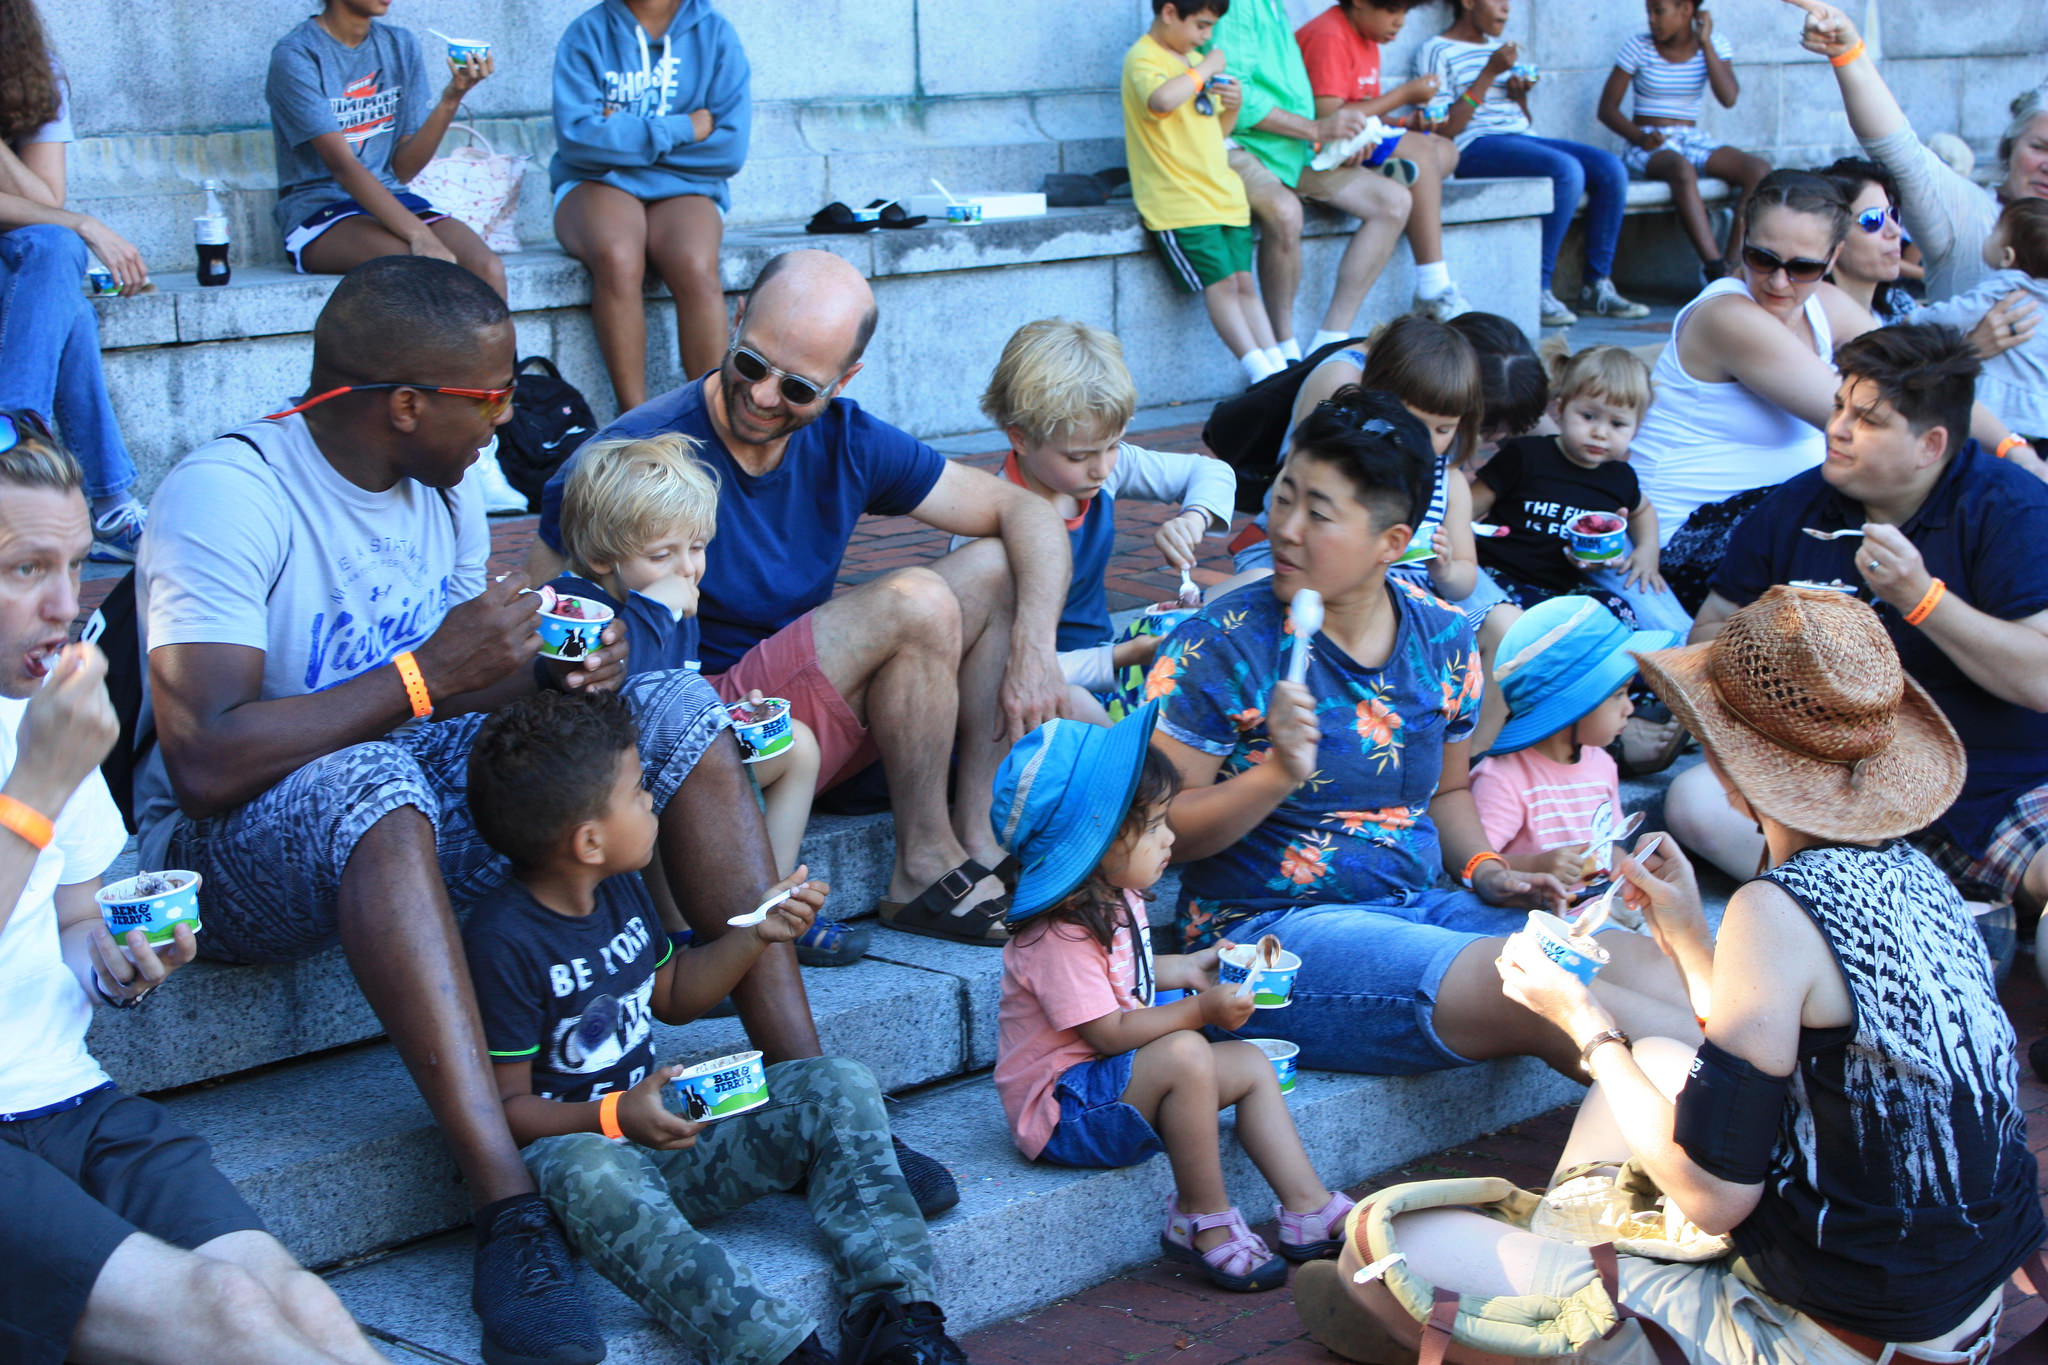 Families eating ice cream at the Multi-Racial Family Ice Cream Social